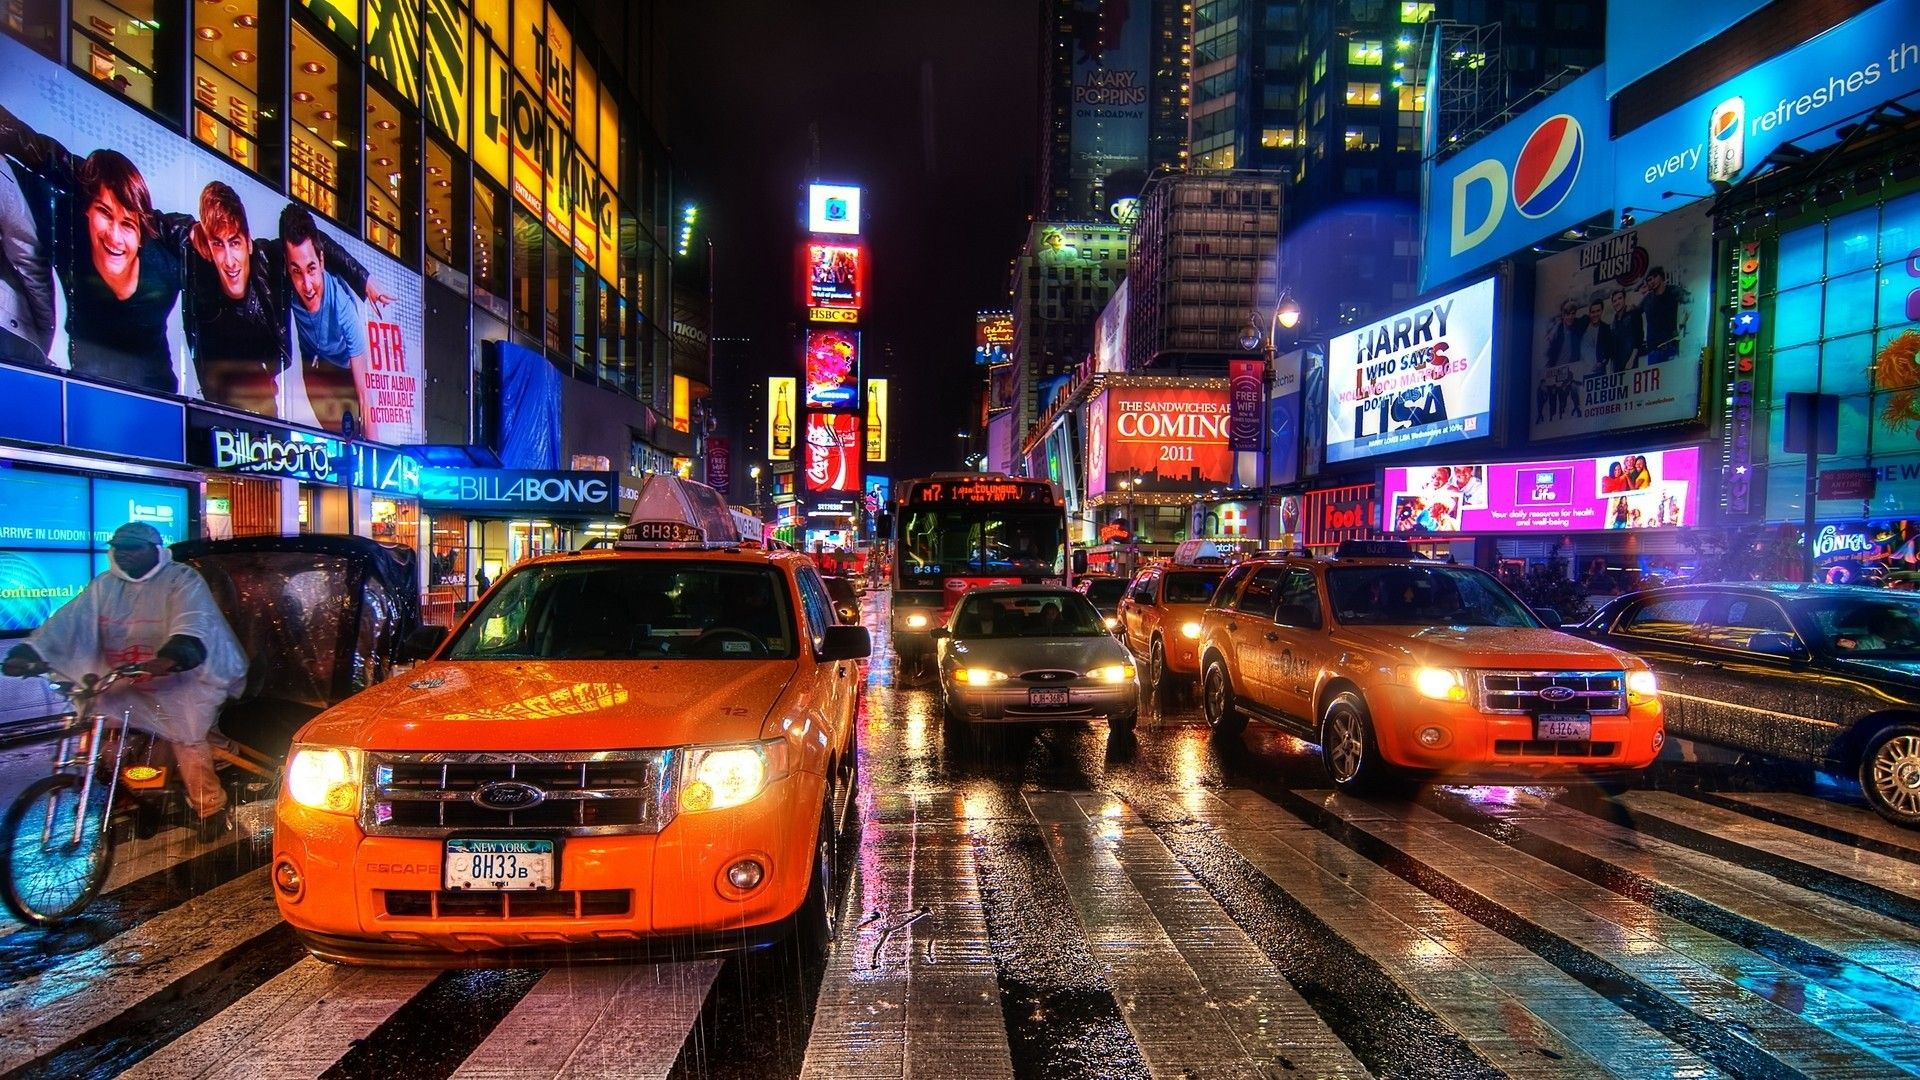 wallpapers new york city, new york city pictures hd